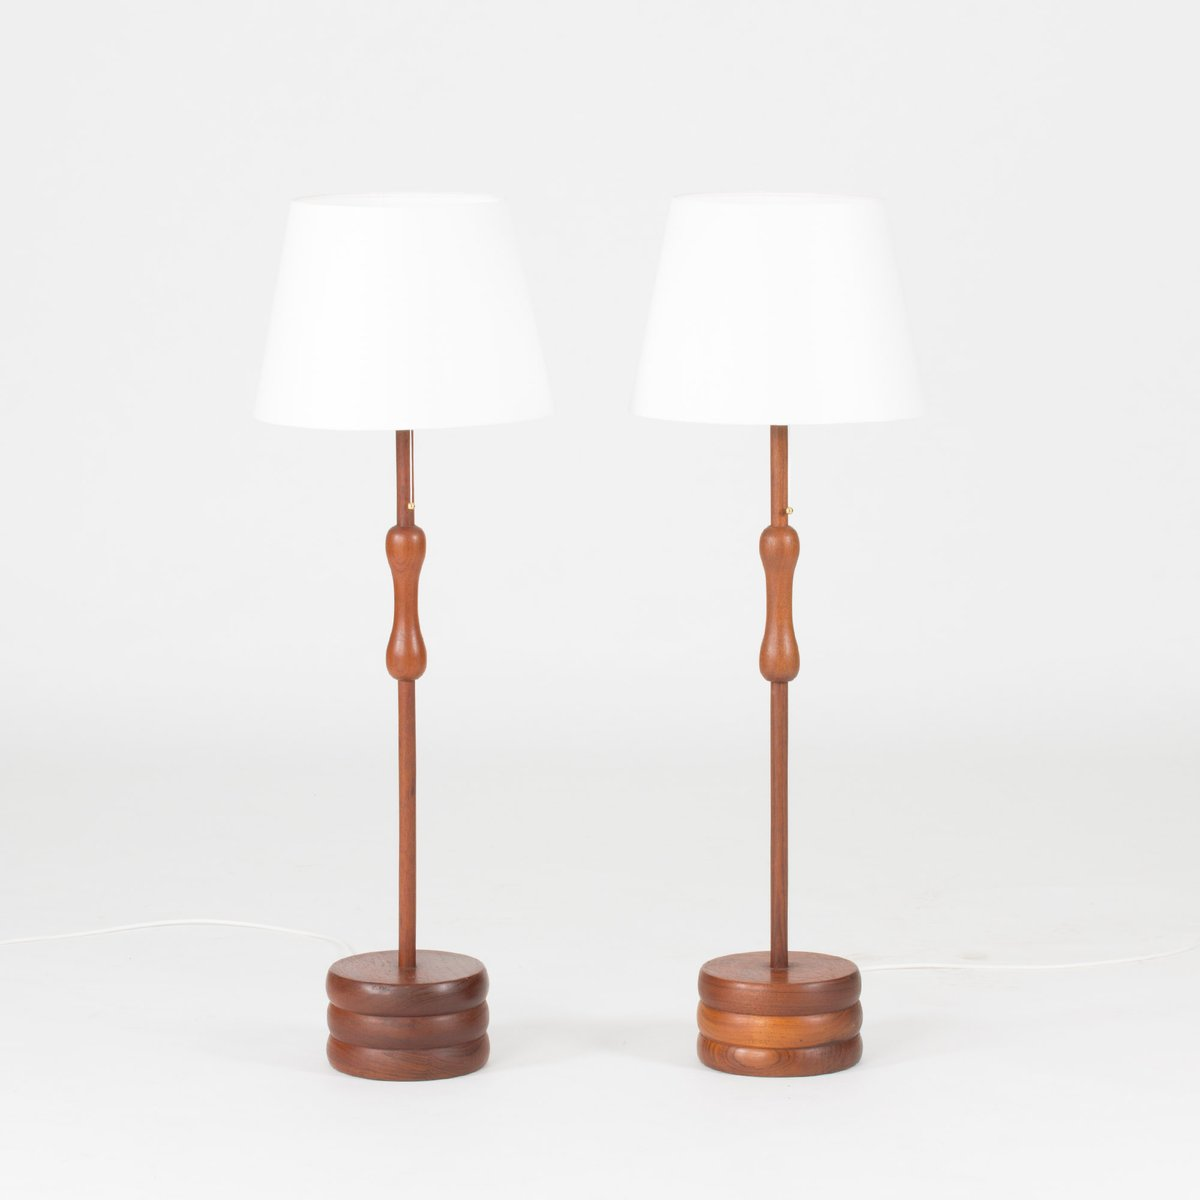 Solid teak floor lamps 1950s set of 2 for sale at pamono for 1950s floor lamps